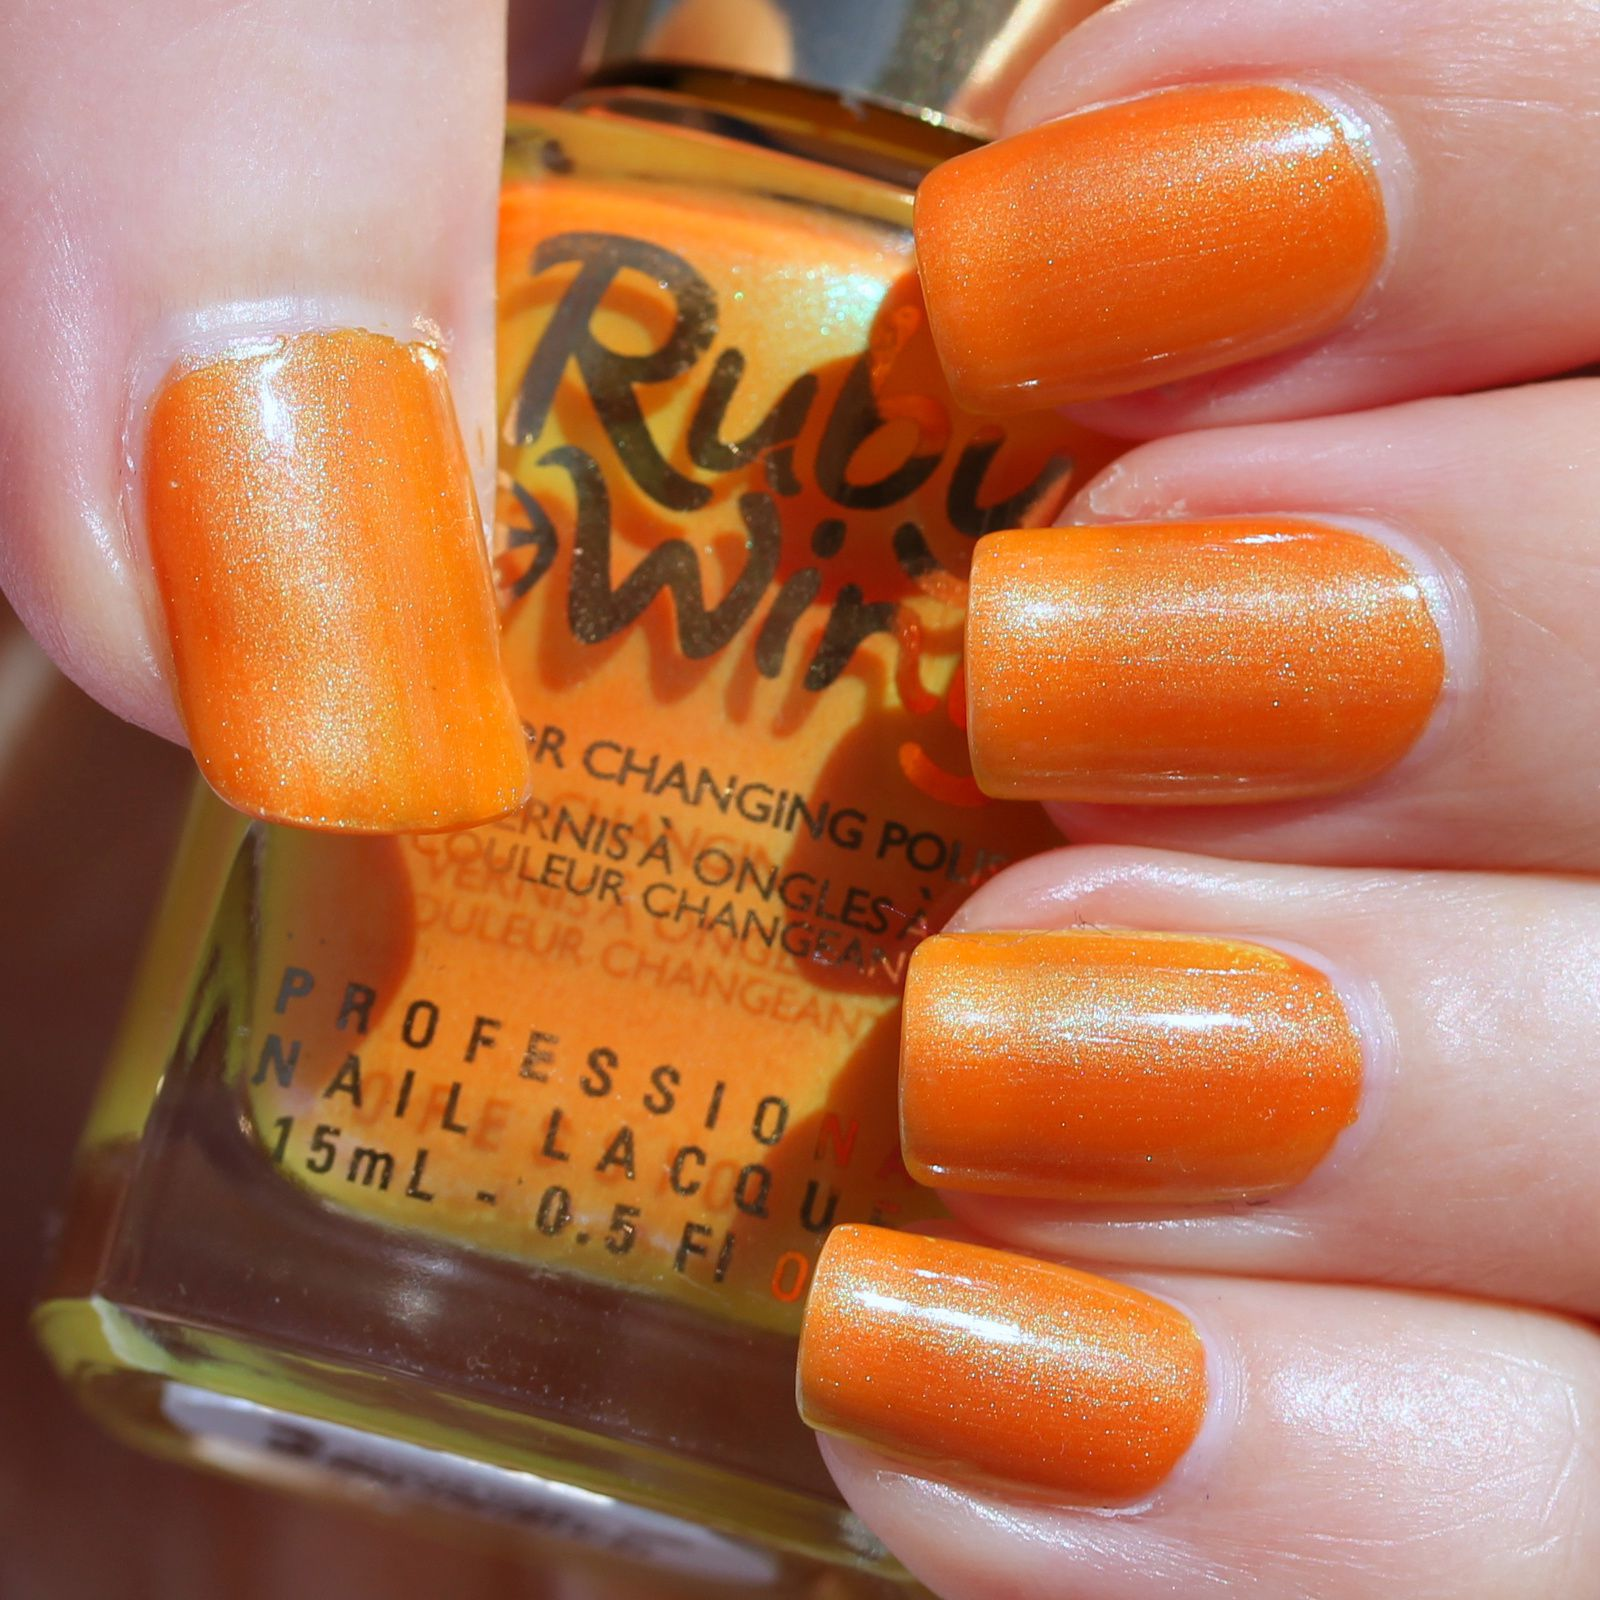 Duri Rejuvacote / Ruby Wing Electric Firefly / Sally Hansen Miracle Gel Top Coat